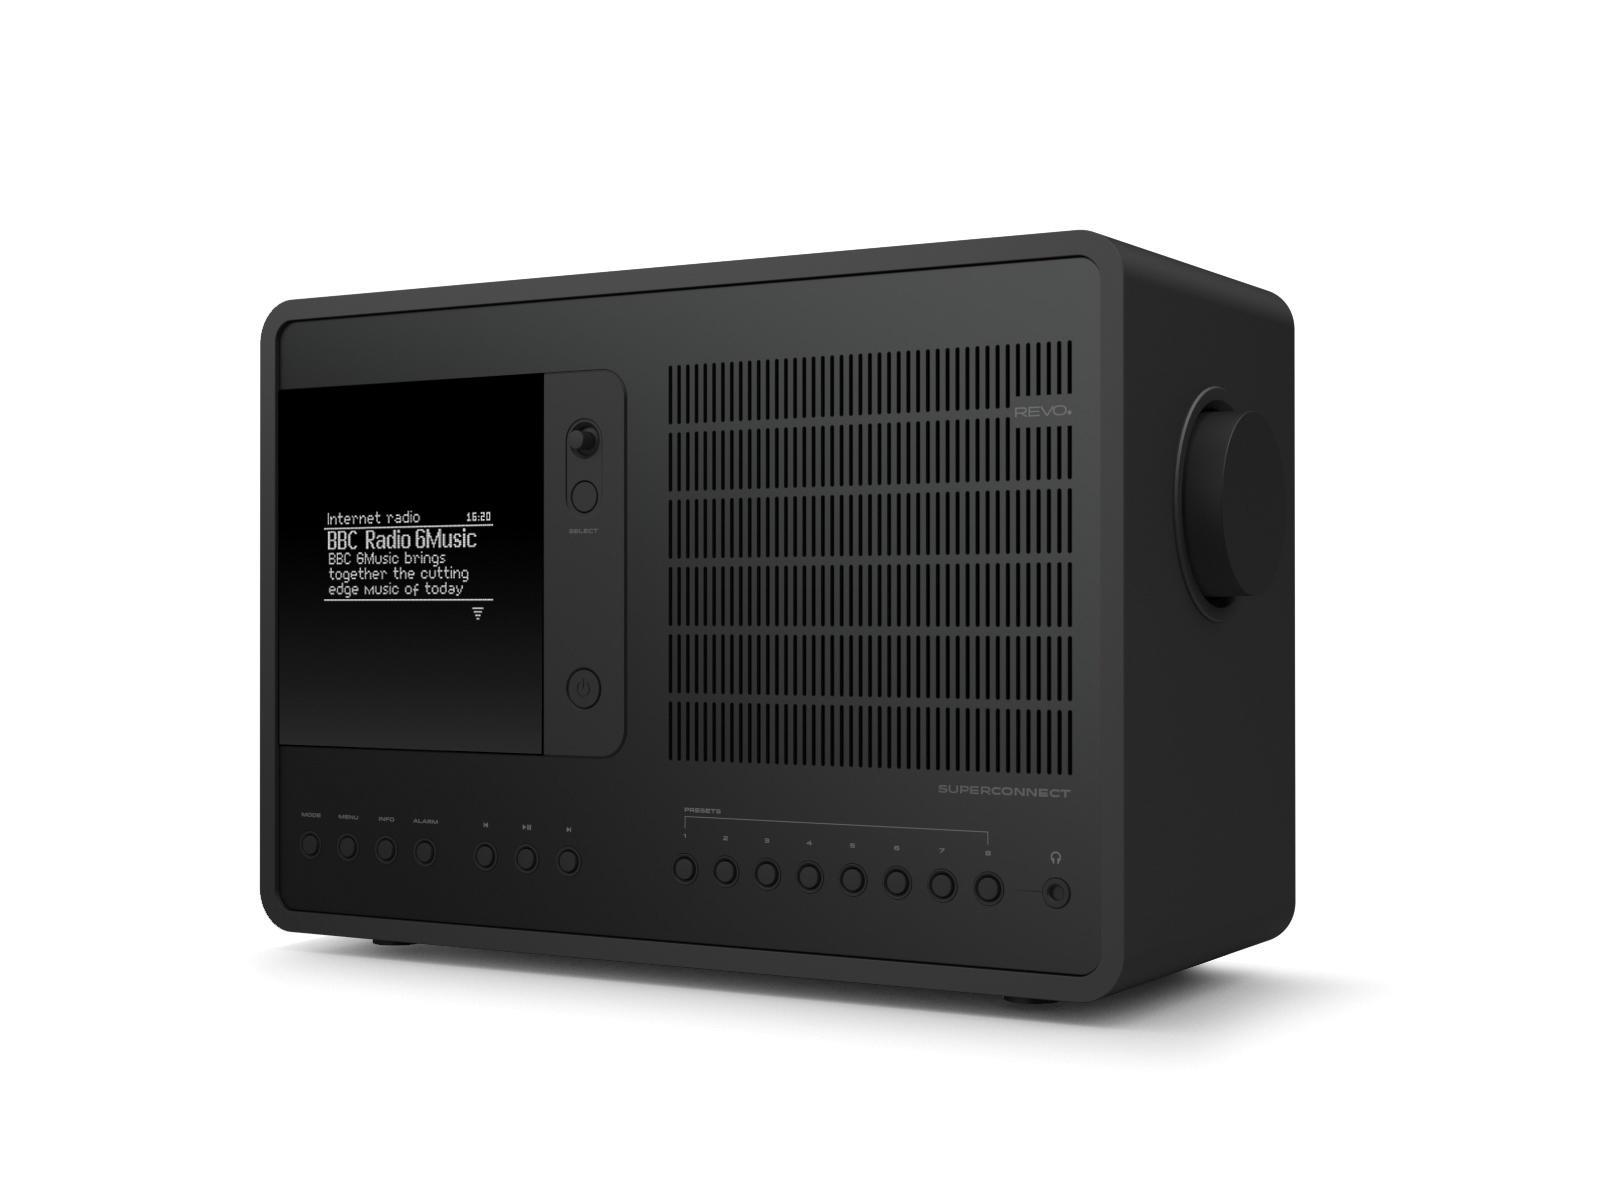 Revo SuperConnect DAB Internet Radio With Spotify - Shadow Edition